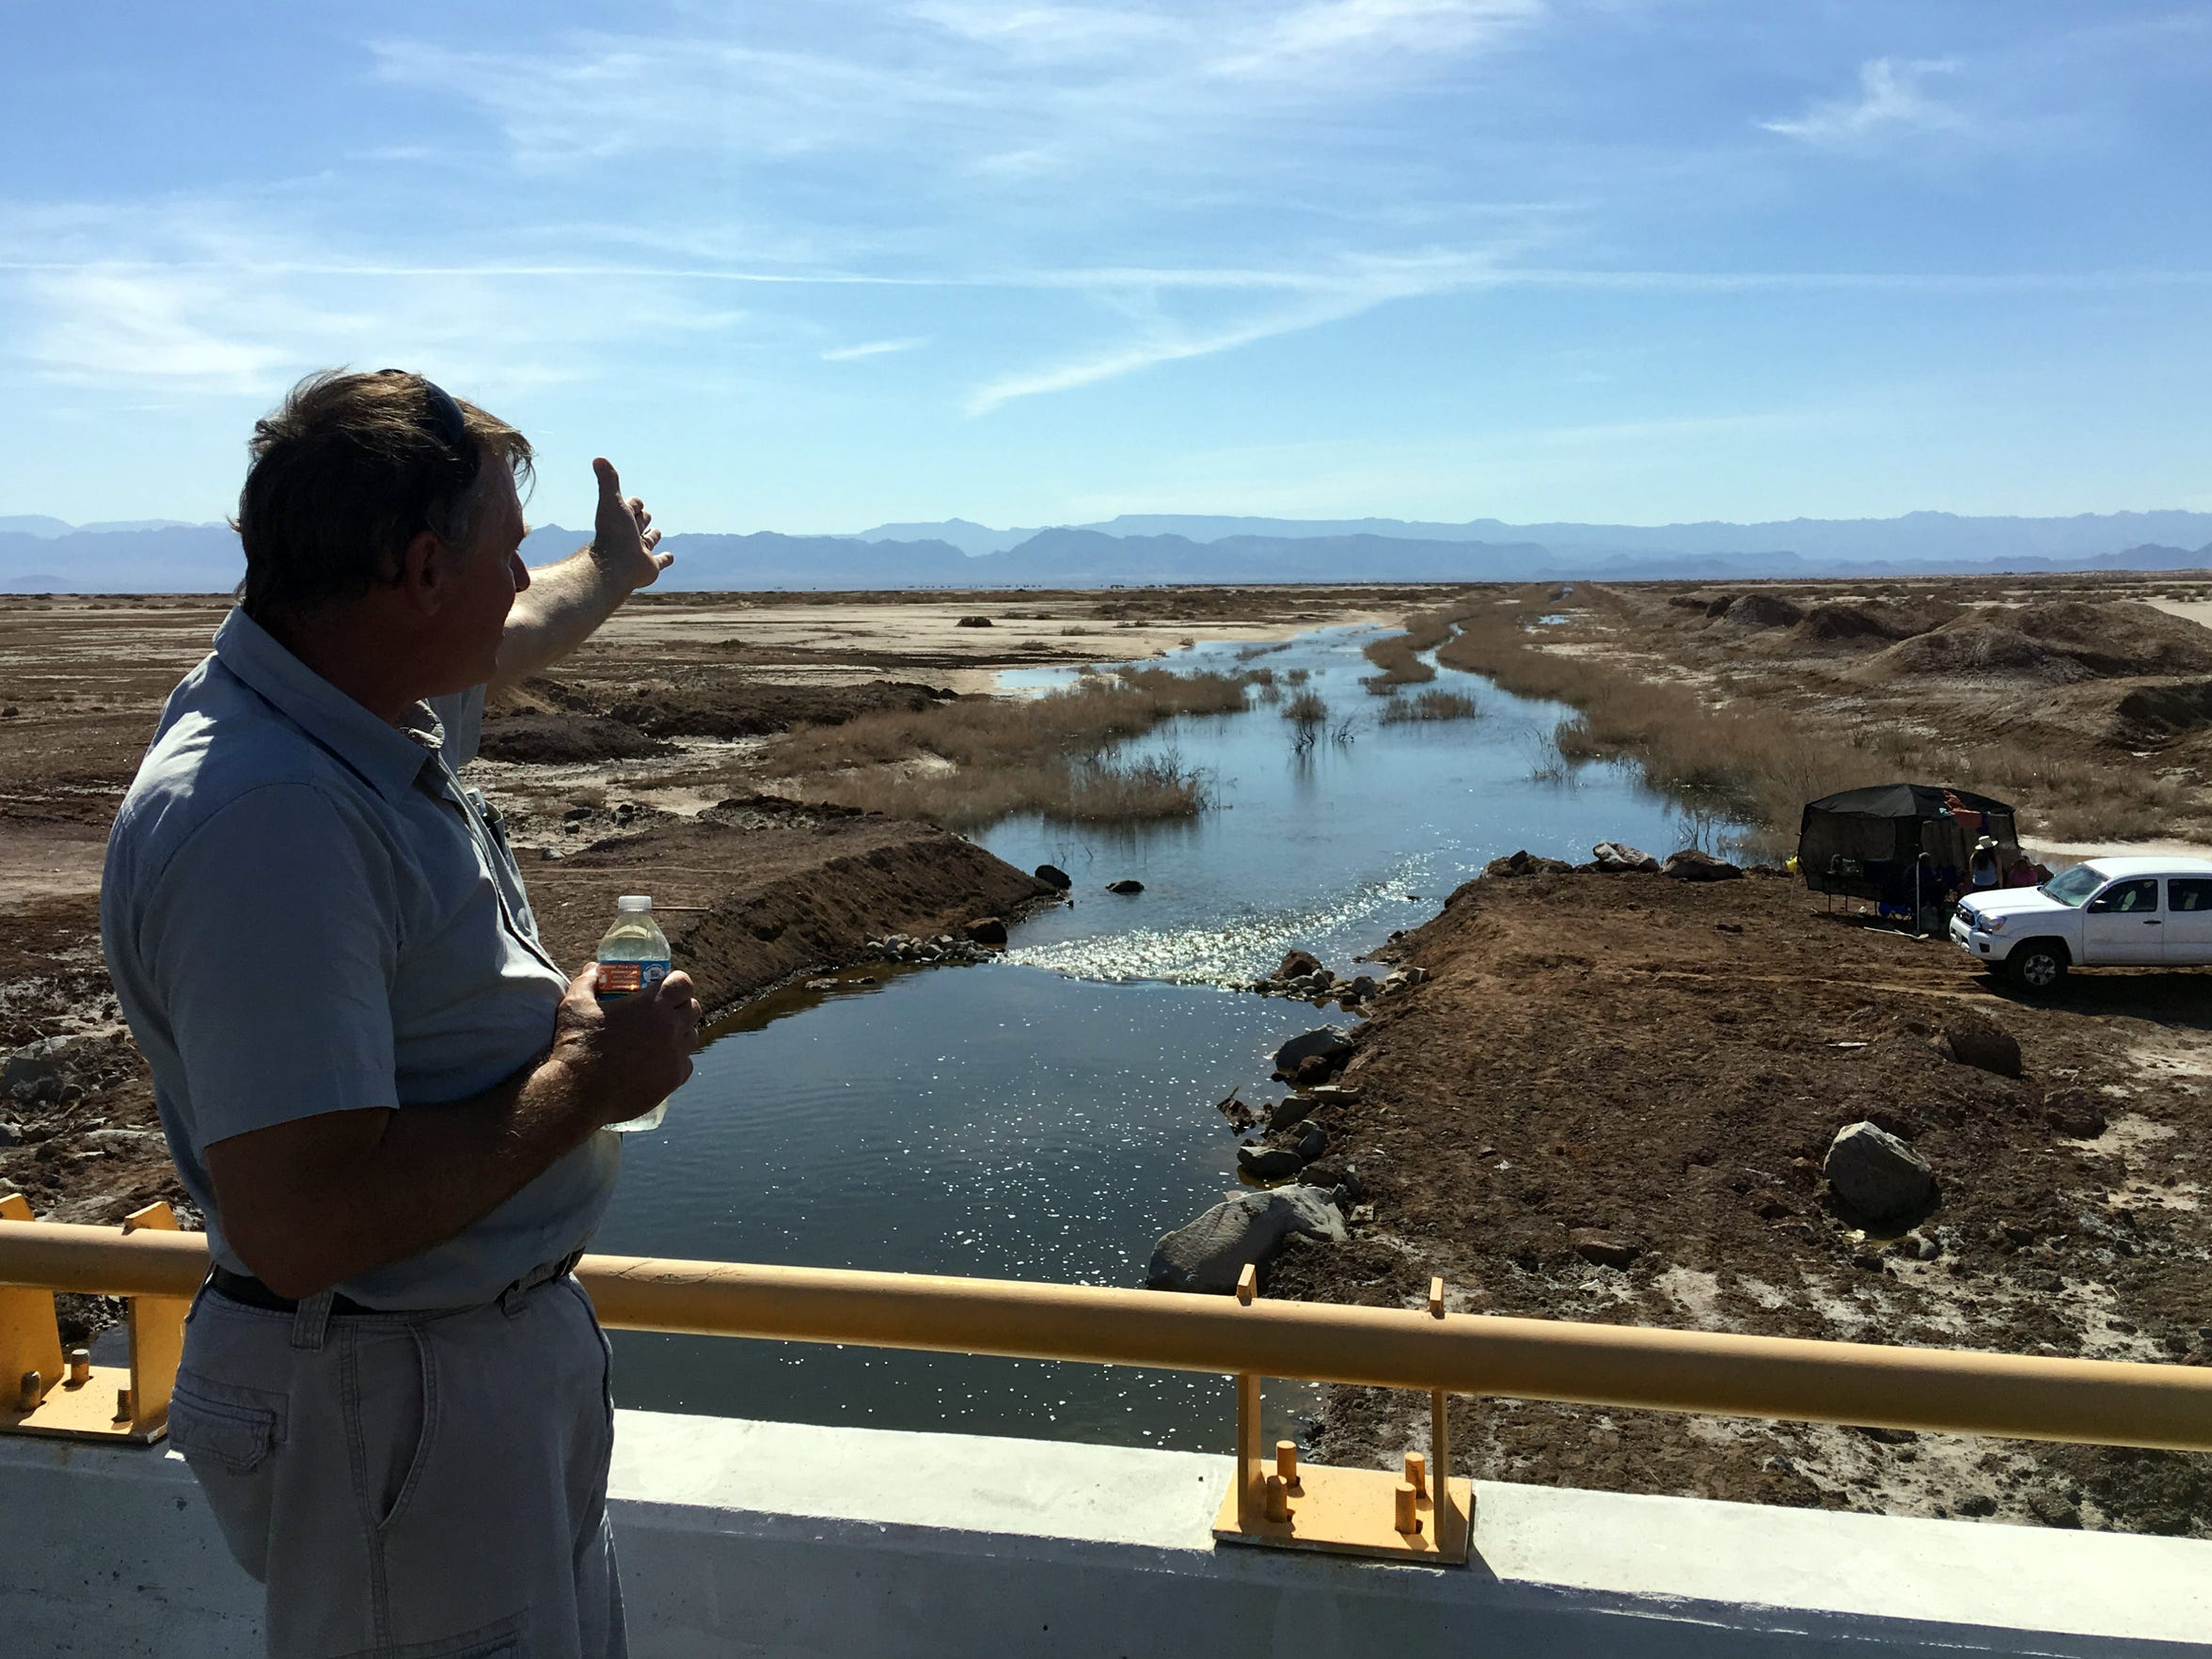 Tom Sephton, who runs a desalination plant in the Salton Sea, stands over a canal in Mexico where water from the Sea of Cortez flows into a dry lakebed. He points north toward the Salton Sea, where he believes this water could save the drying lake.